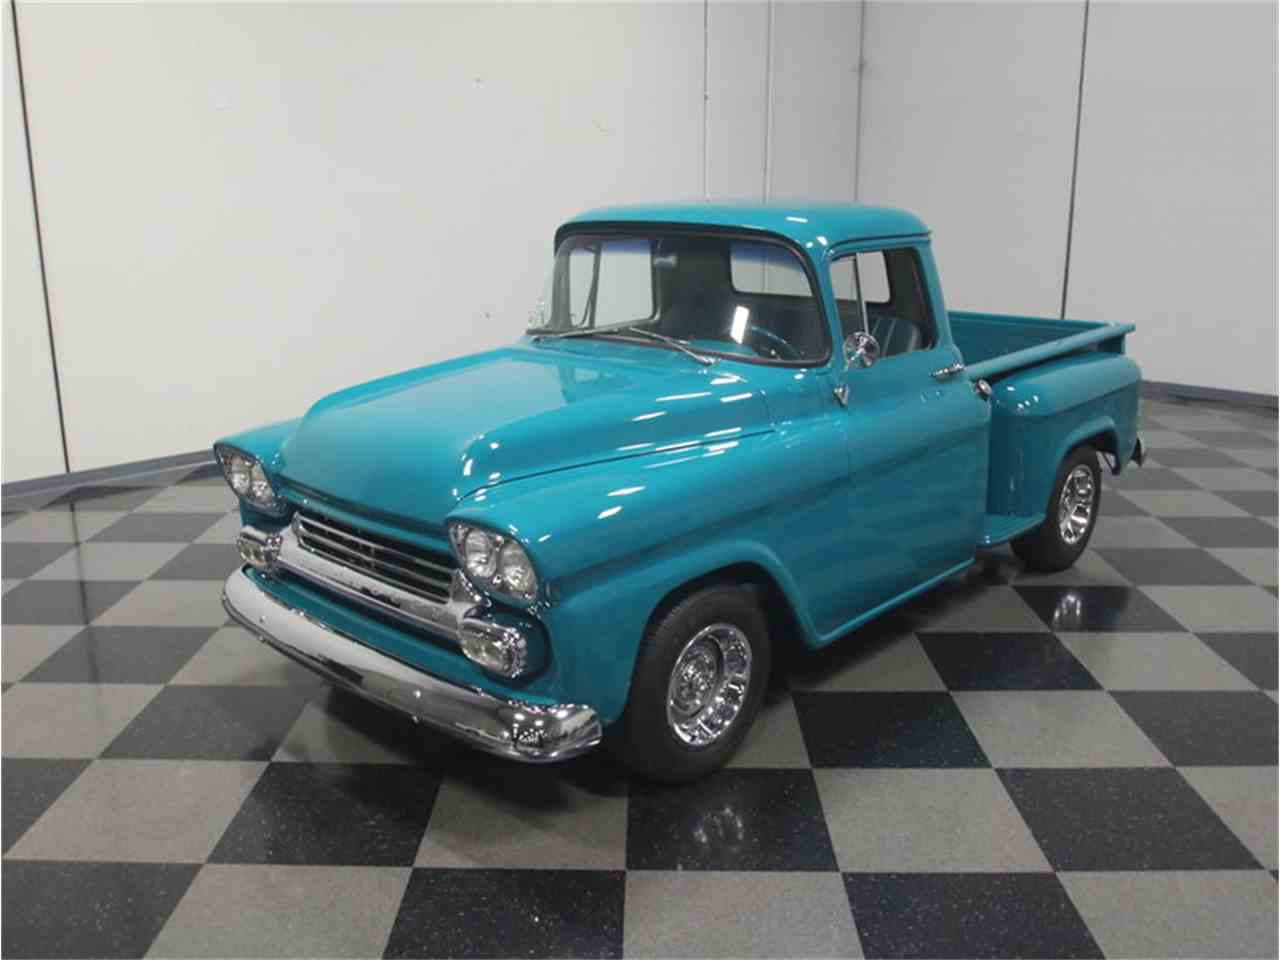 Large Picture of 1959 Apache located in Lithia Springs Georgia - $34,995.00 Offered by Streetside Classics - Atlanta - LWJ0